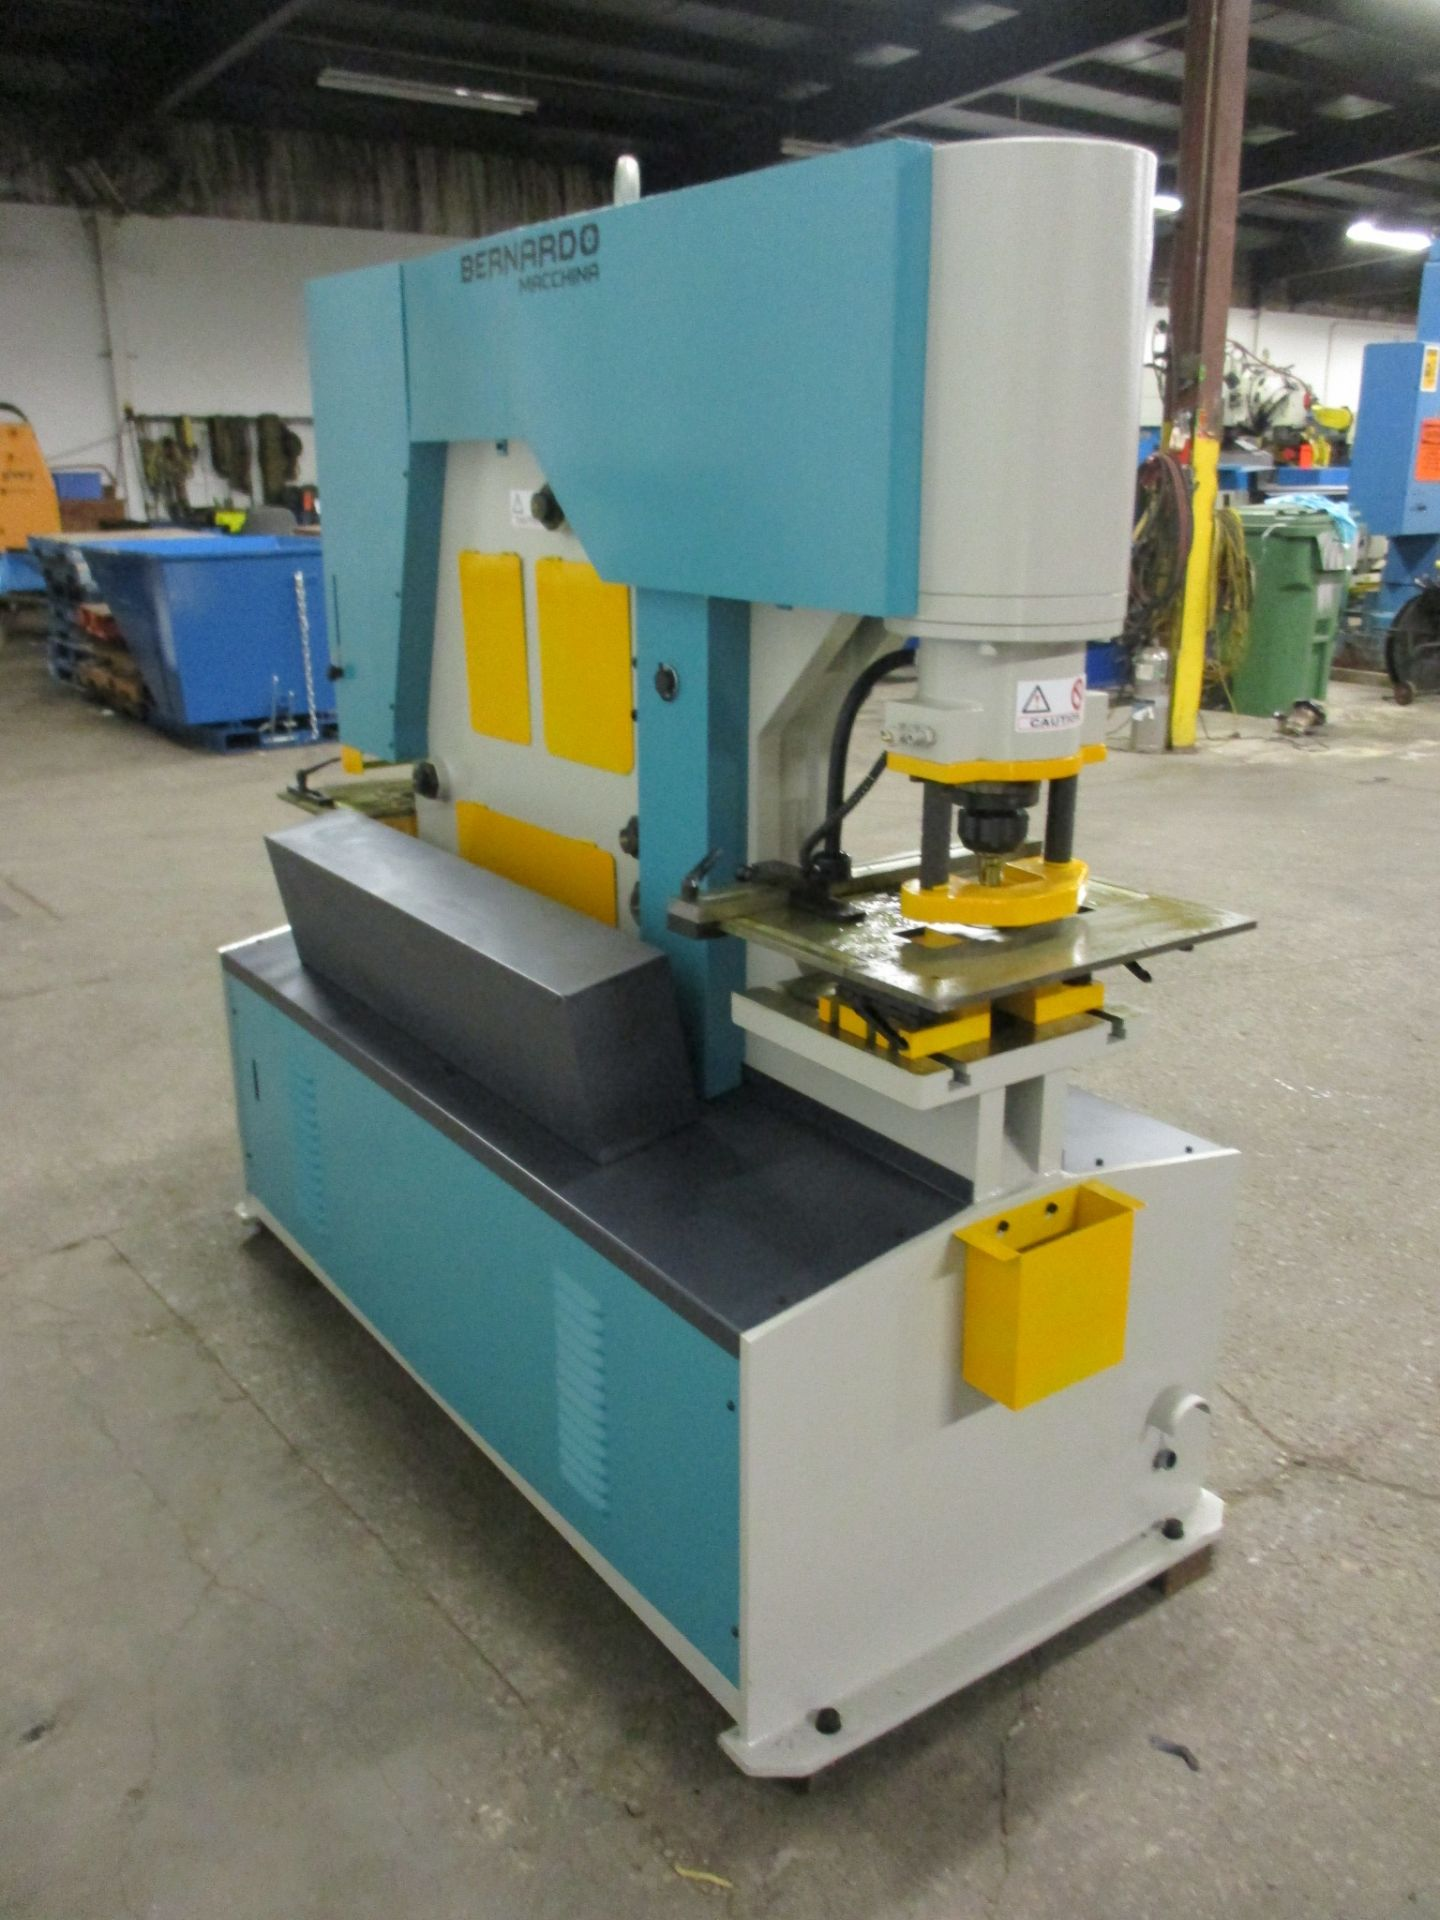 Bernardo Macchina 95 Ton Capacity Hydraulic Ironworker - complete with dies and punches - Dual - Image 4 of 4